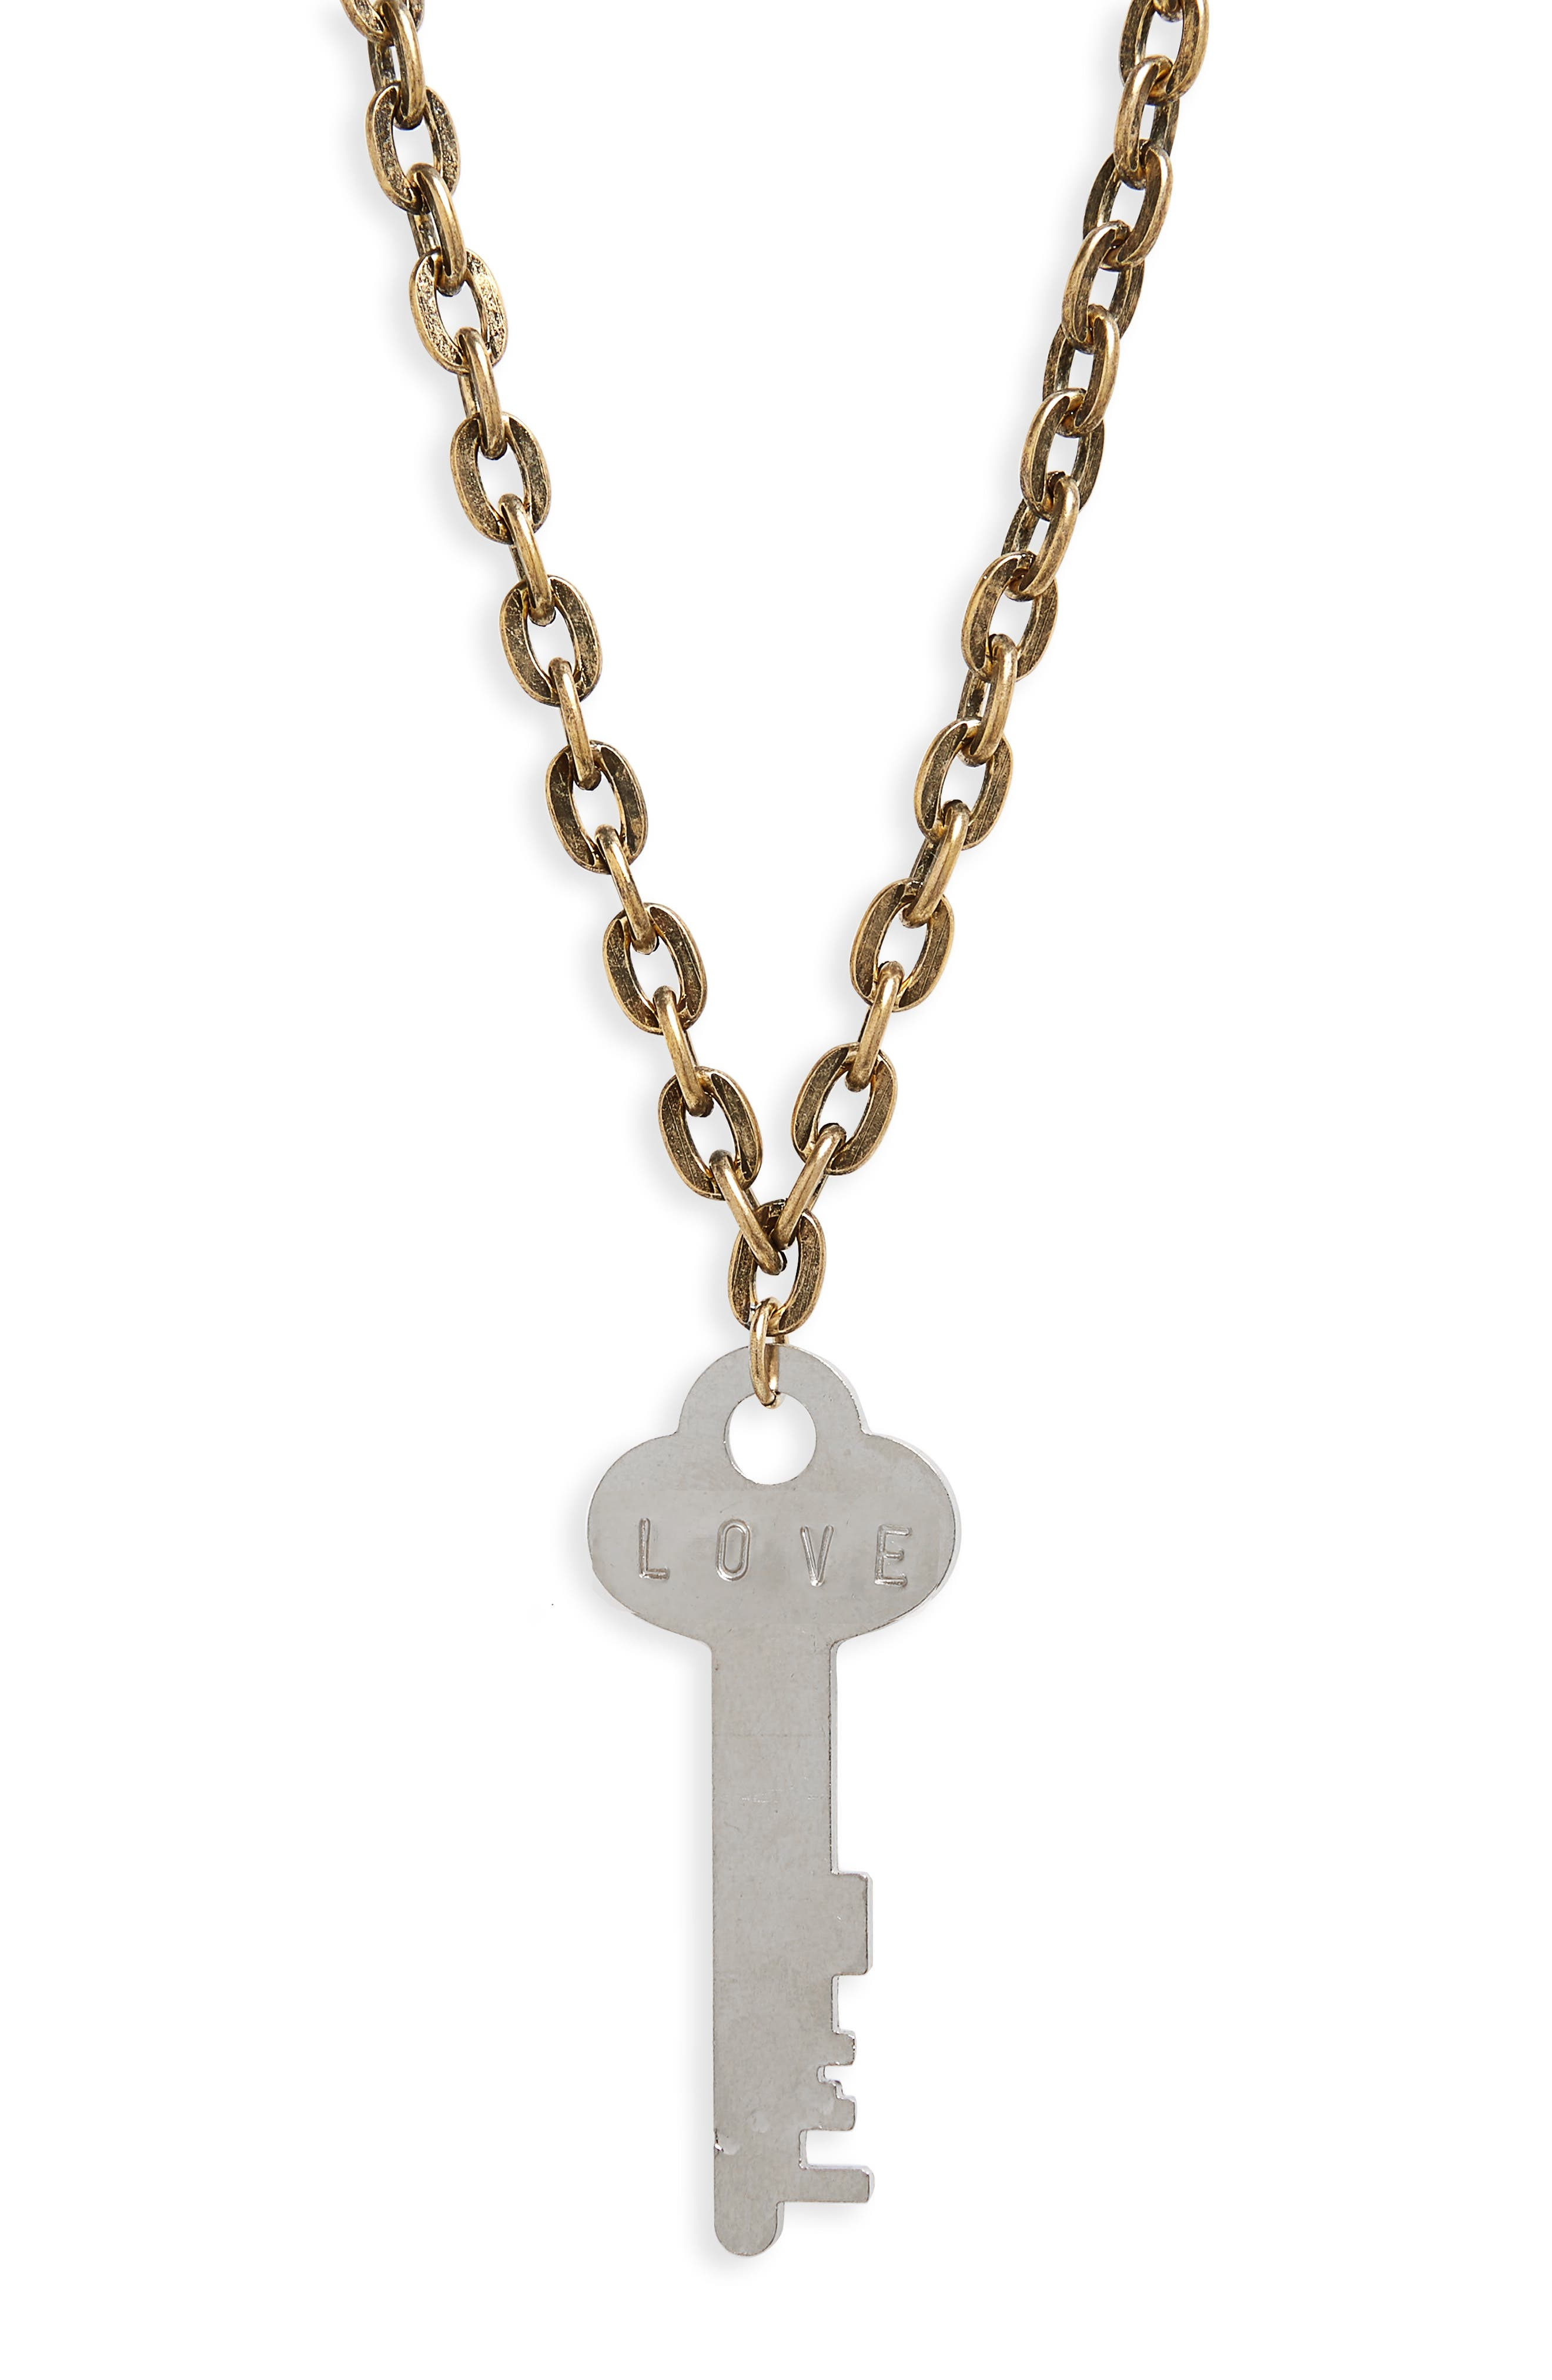 I Am Love Key Charm Necklace,                             Alternate thumbnail 6, color,